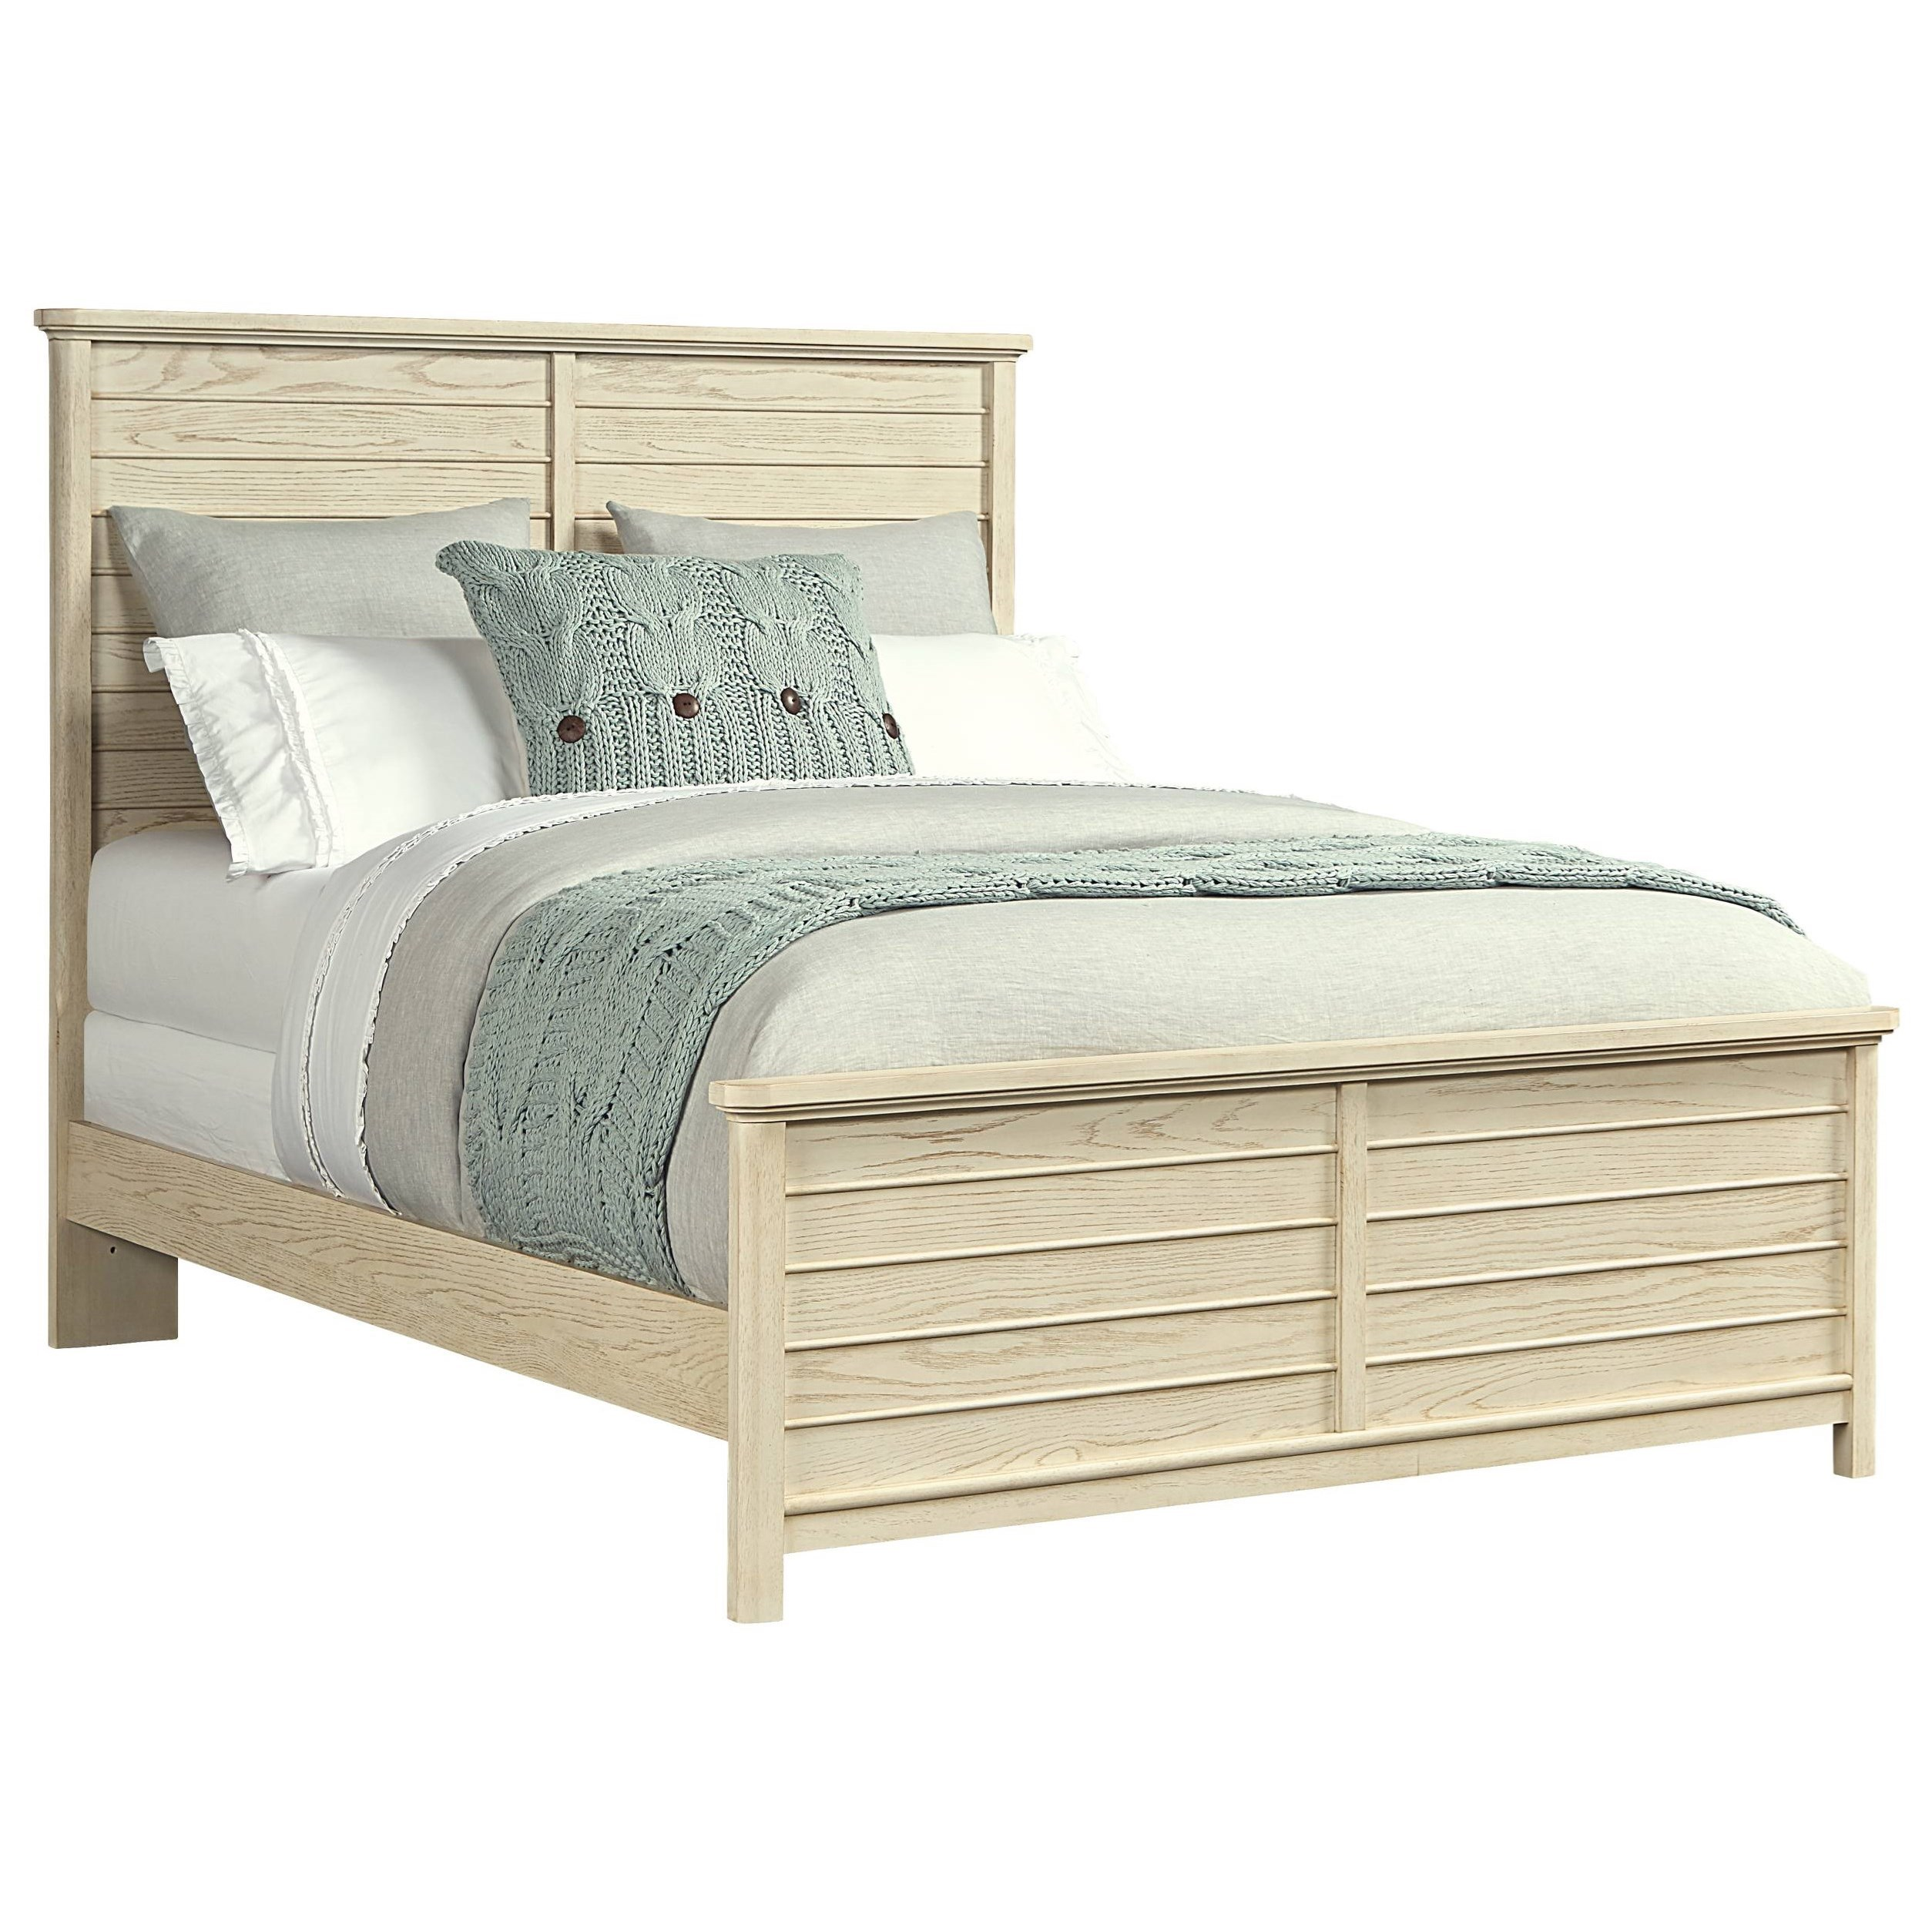 Stone & Leigh Furniture Driftwood Park Queen Panel Bed - Item Number: 536-23-45